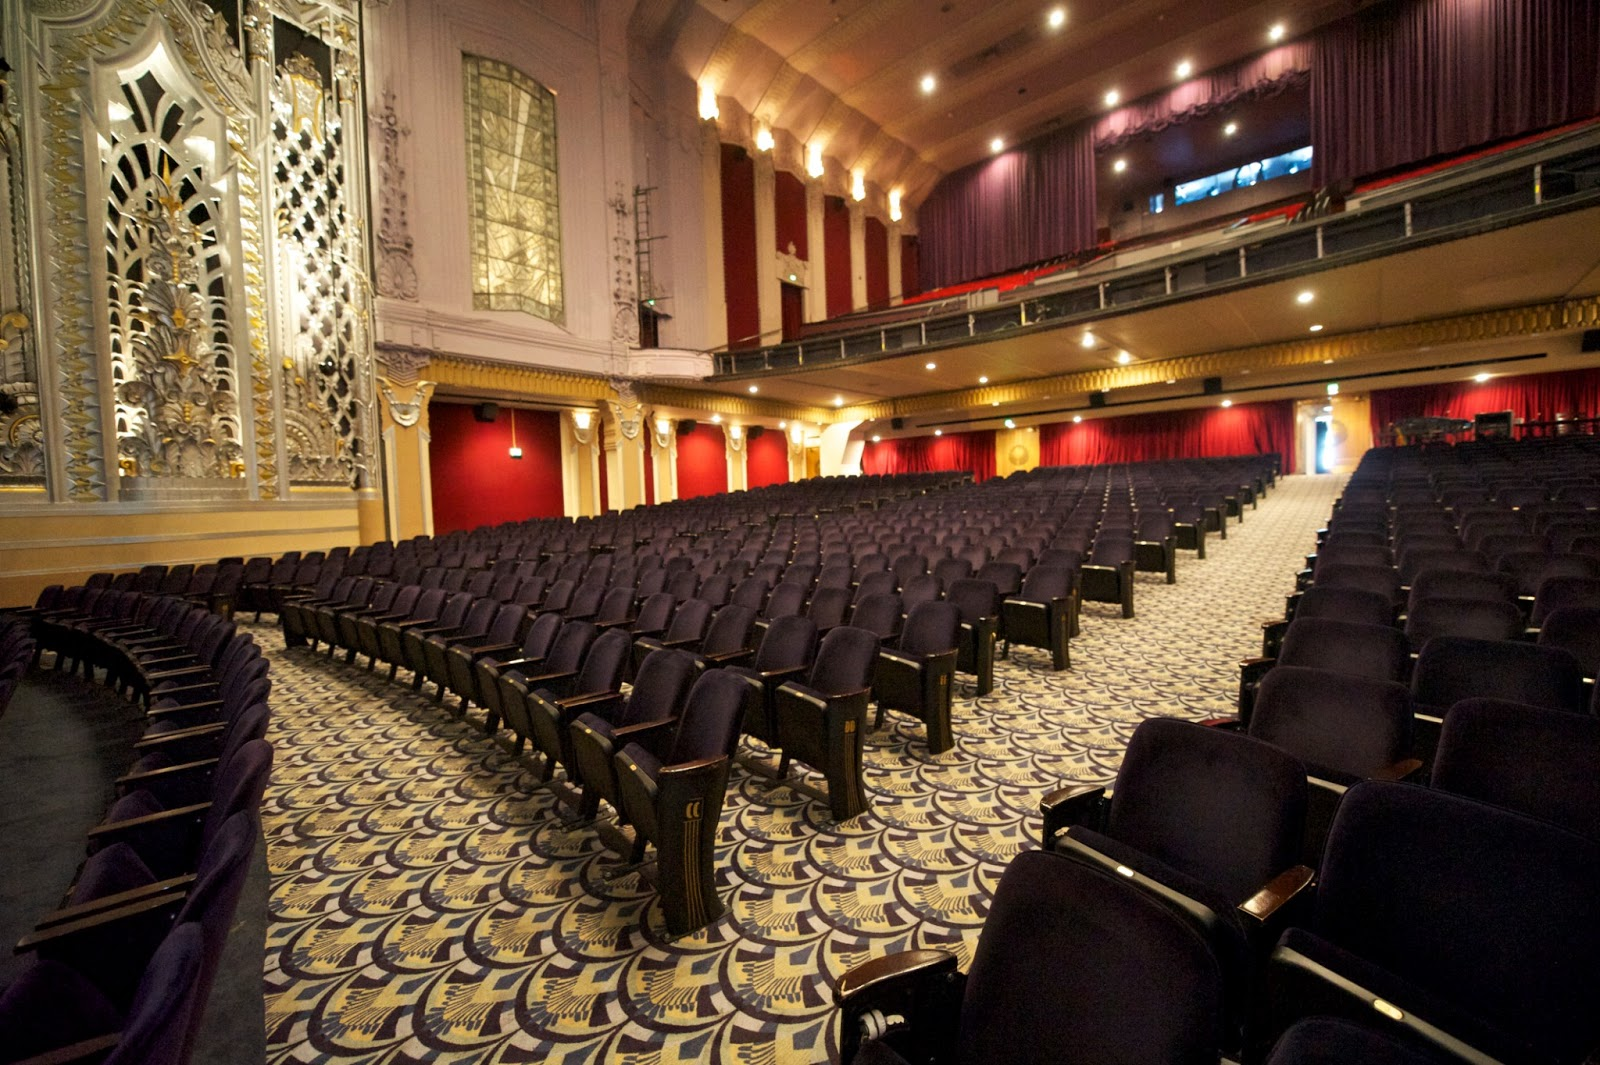 Pin seating orchestra balcony left 175 165 center 224 173 for Balcony seating